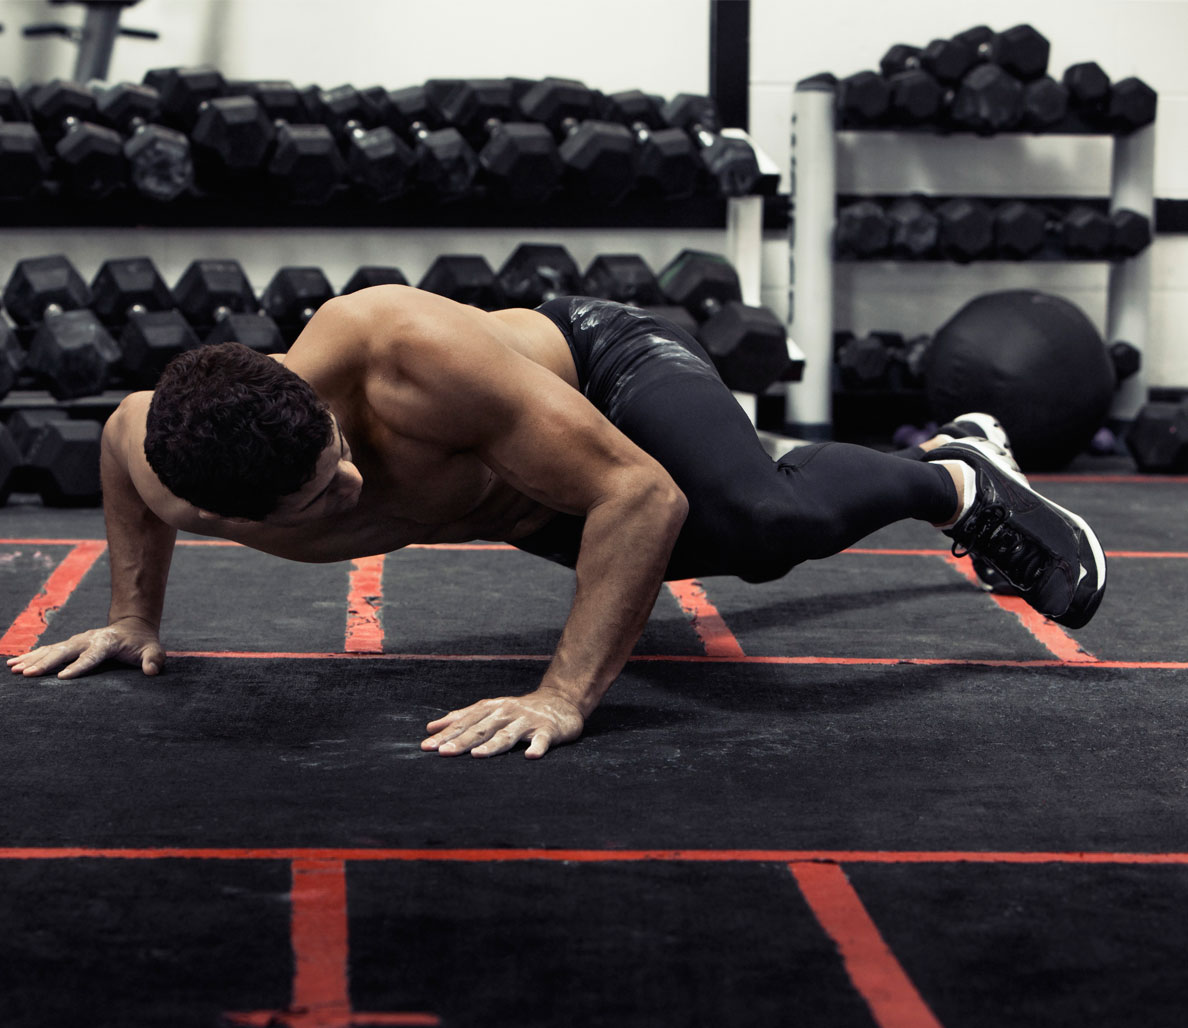 5 Bodyweight Exercises You Can Do Without a Gym